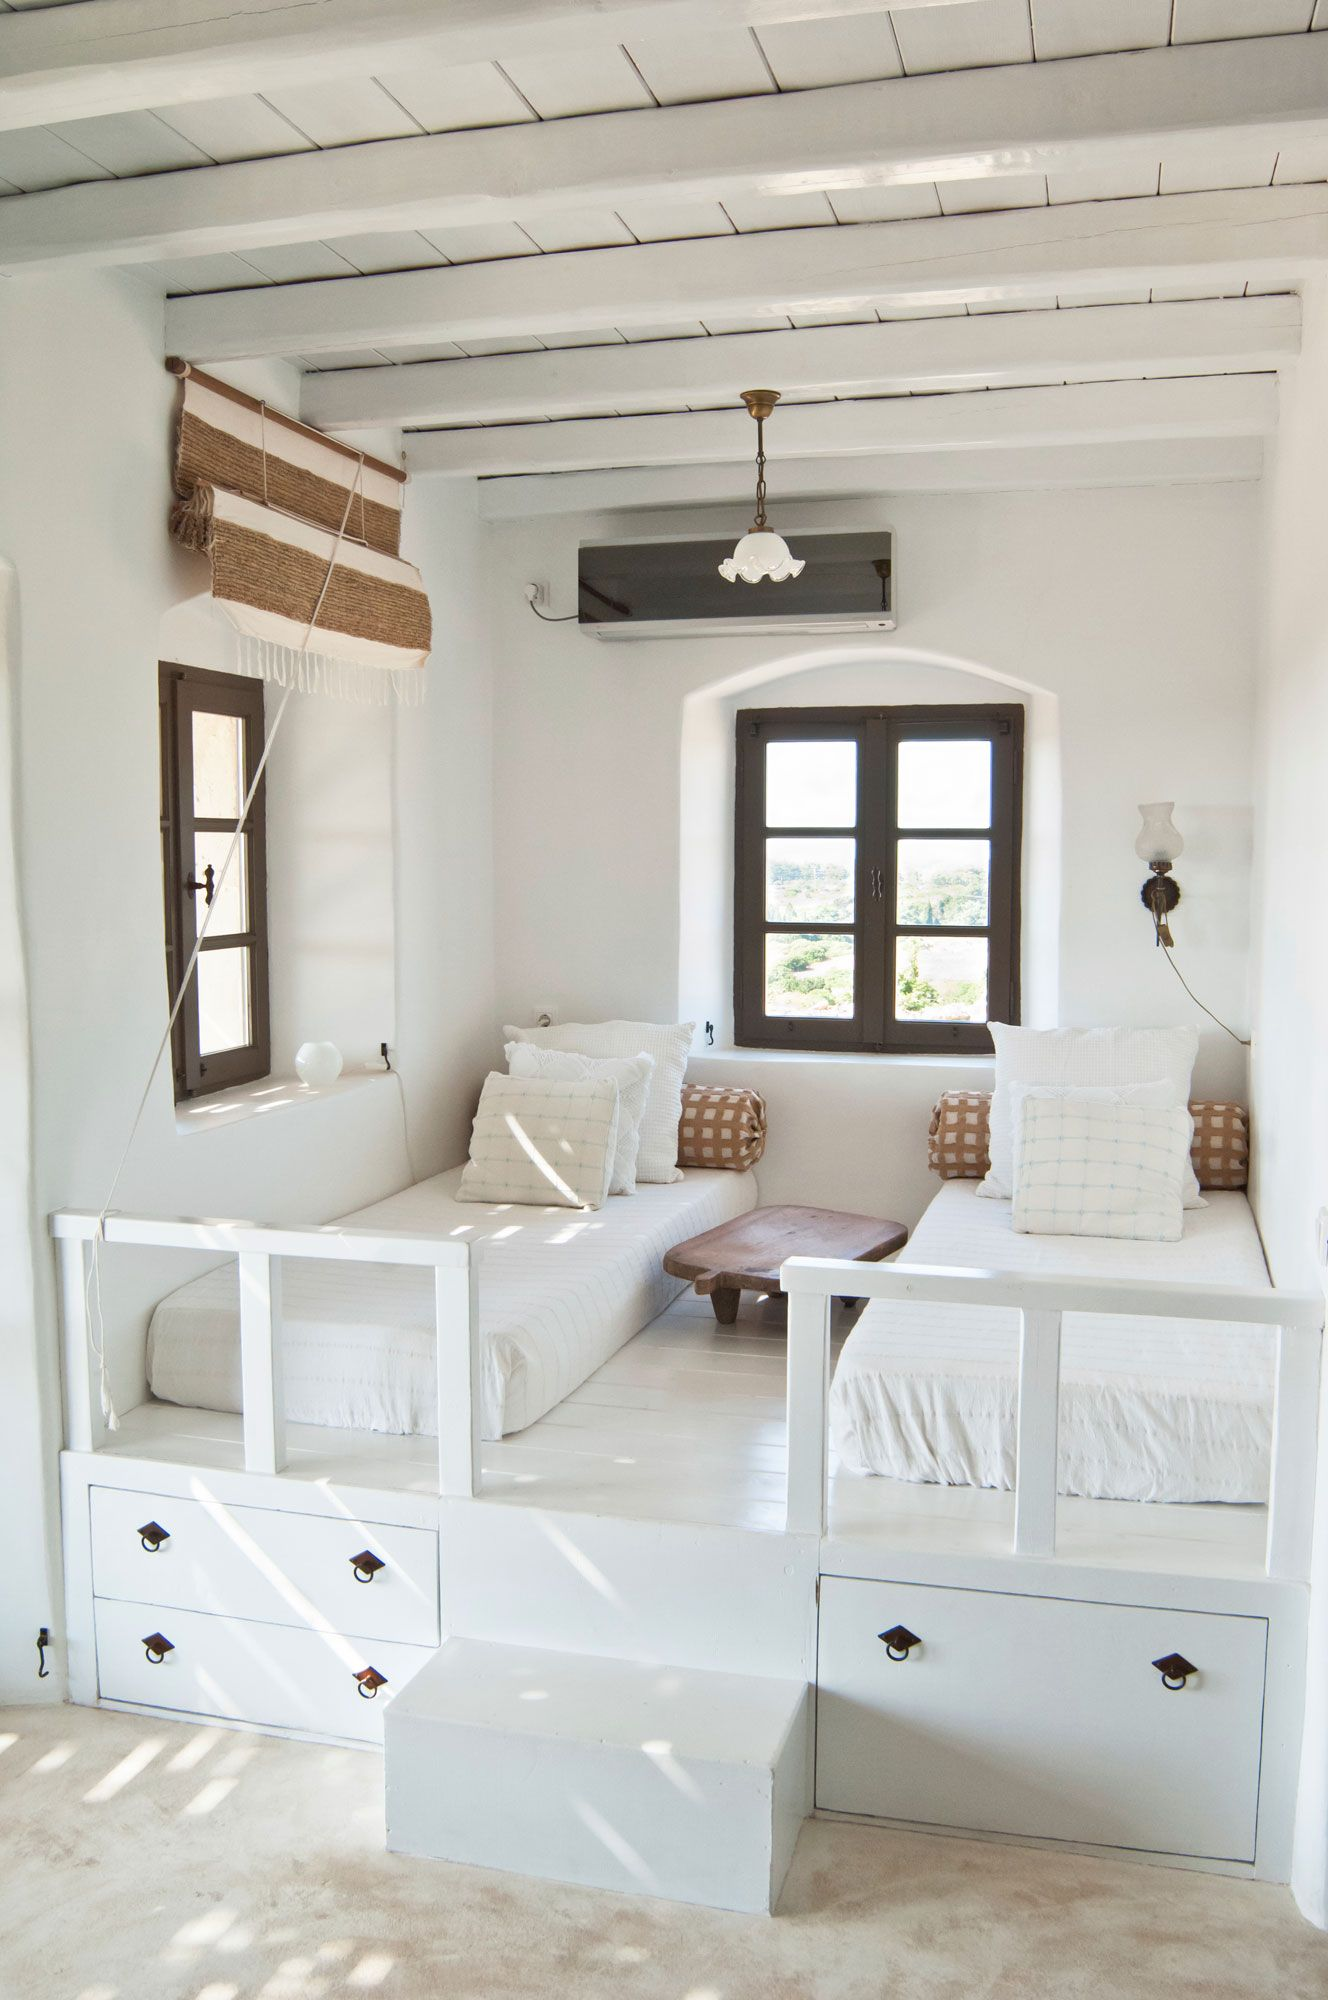 Ideas para decorar una casa en la playa hogarmania for Como decorar mi casa moderna